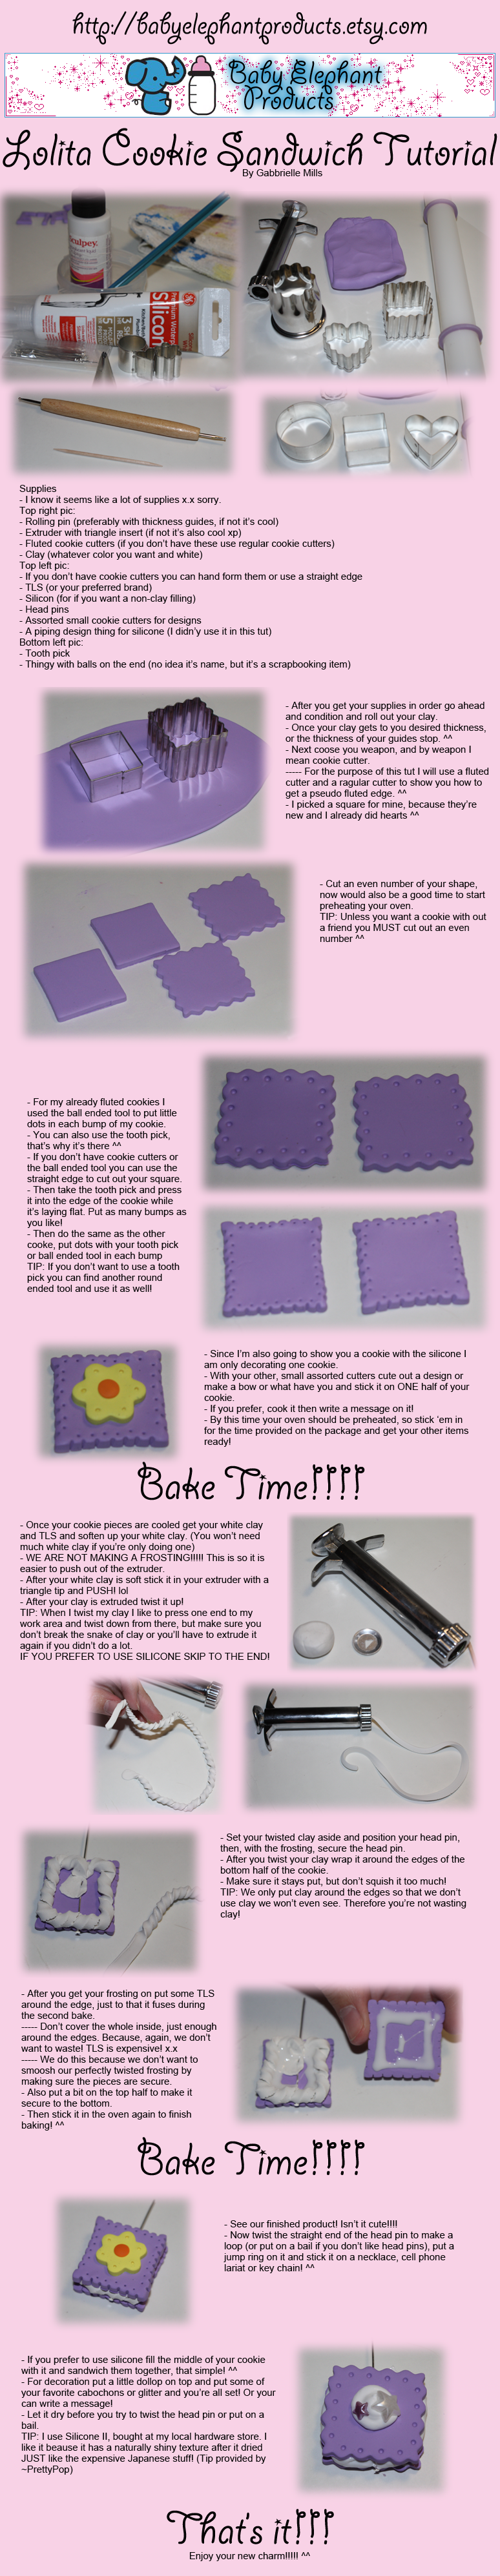 .: Cooke Sandwich Tutorial :. by moofestgirl